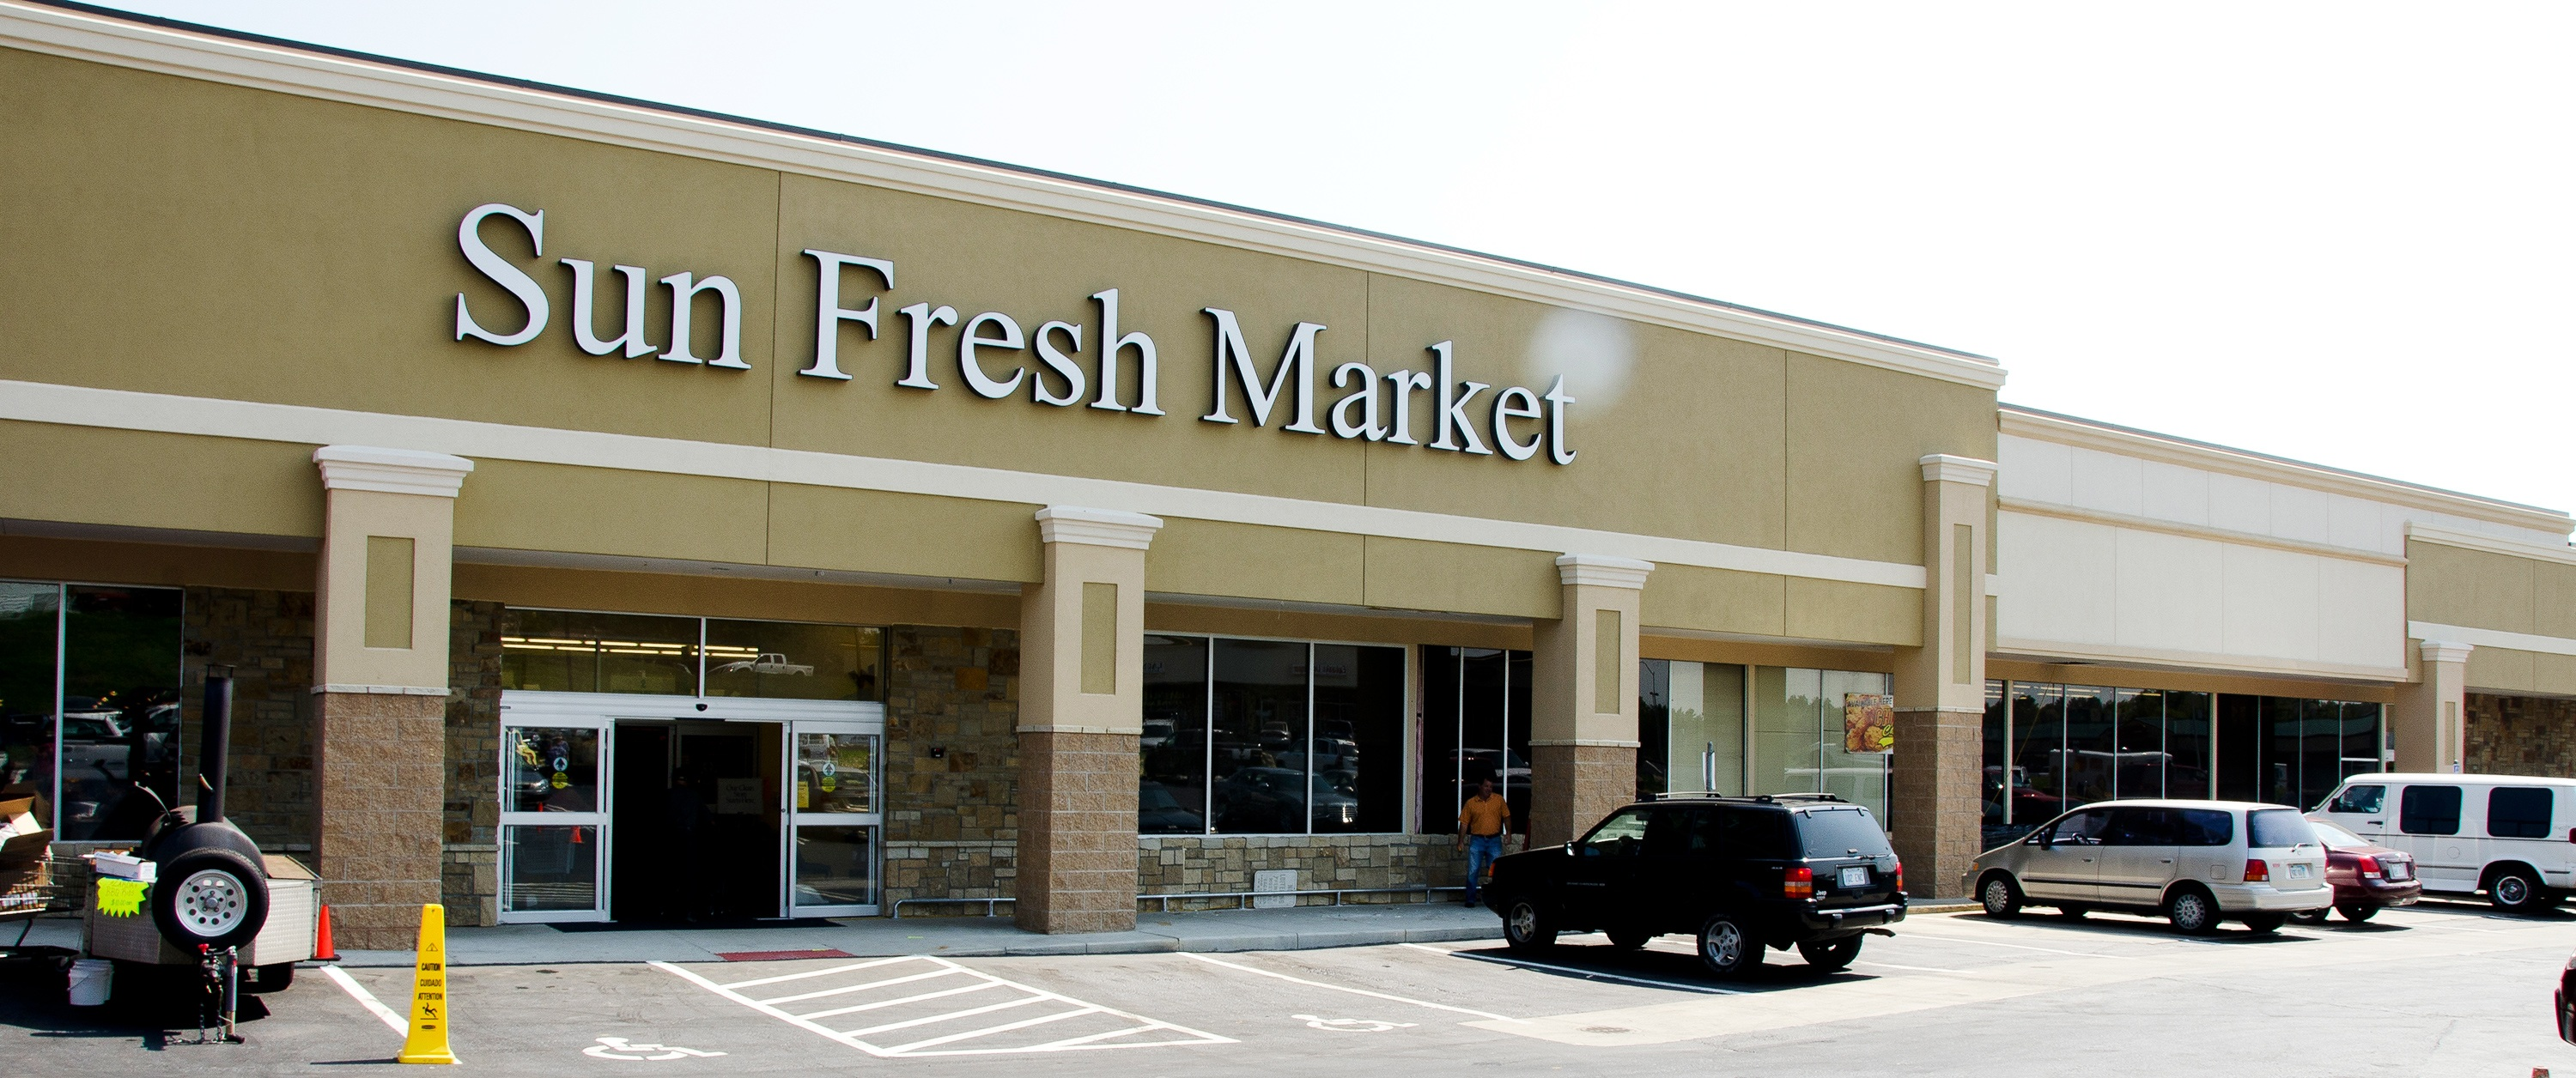 Shawnee Sun Fresh Market - 2803 S 47th St. Kansas City, KS